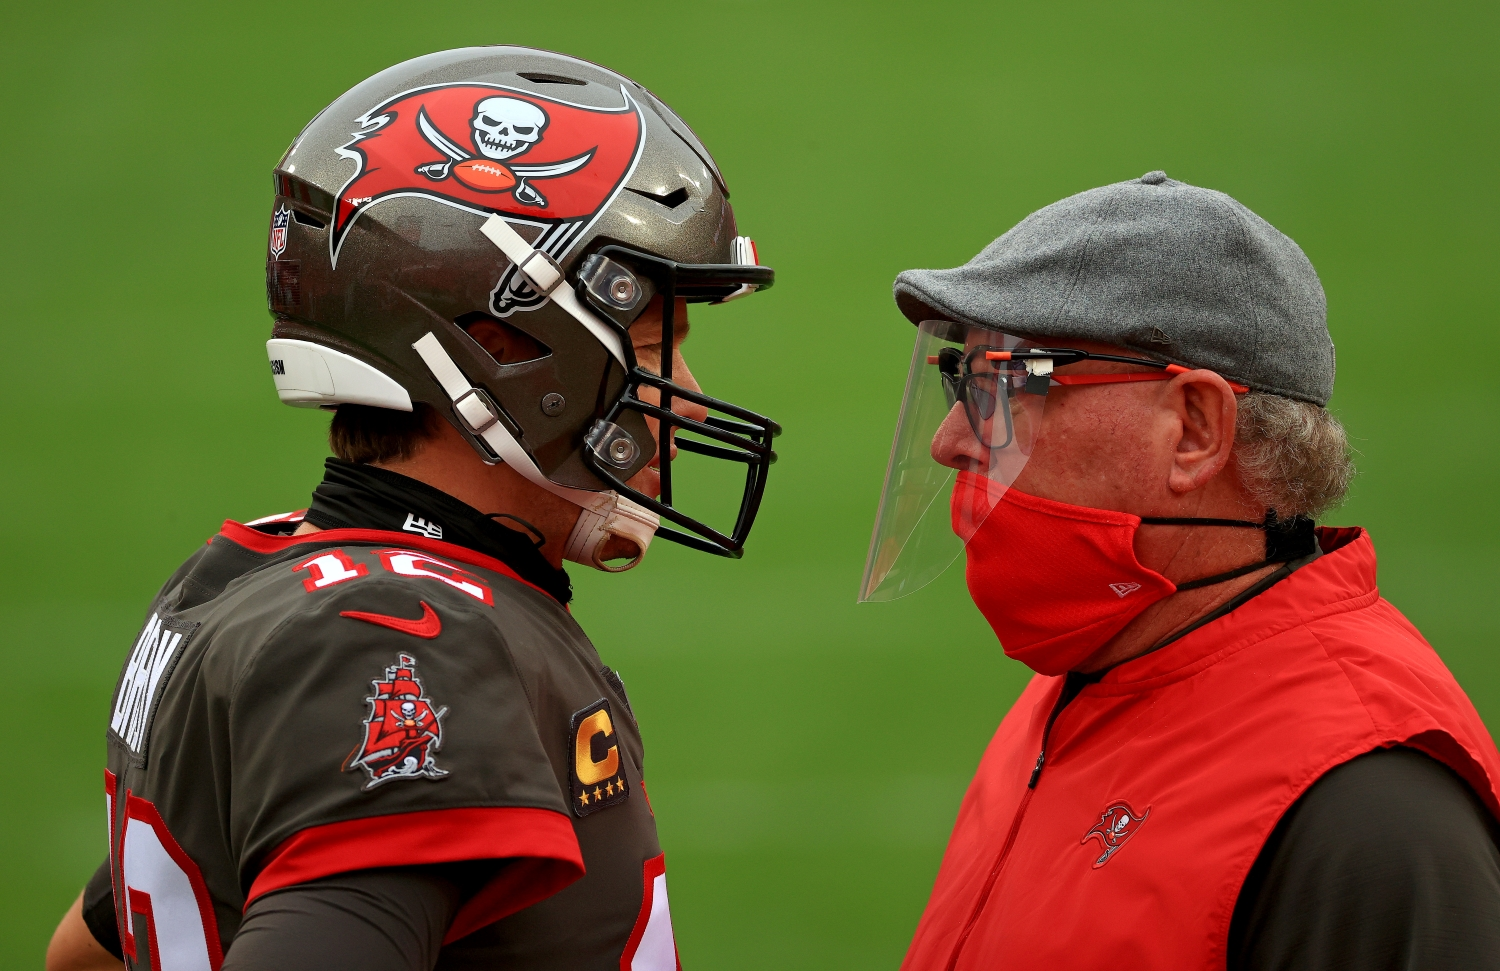 Buccaneers coach Bruce Arians talks to Tom Brady during a game.